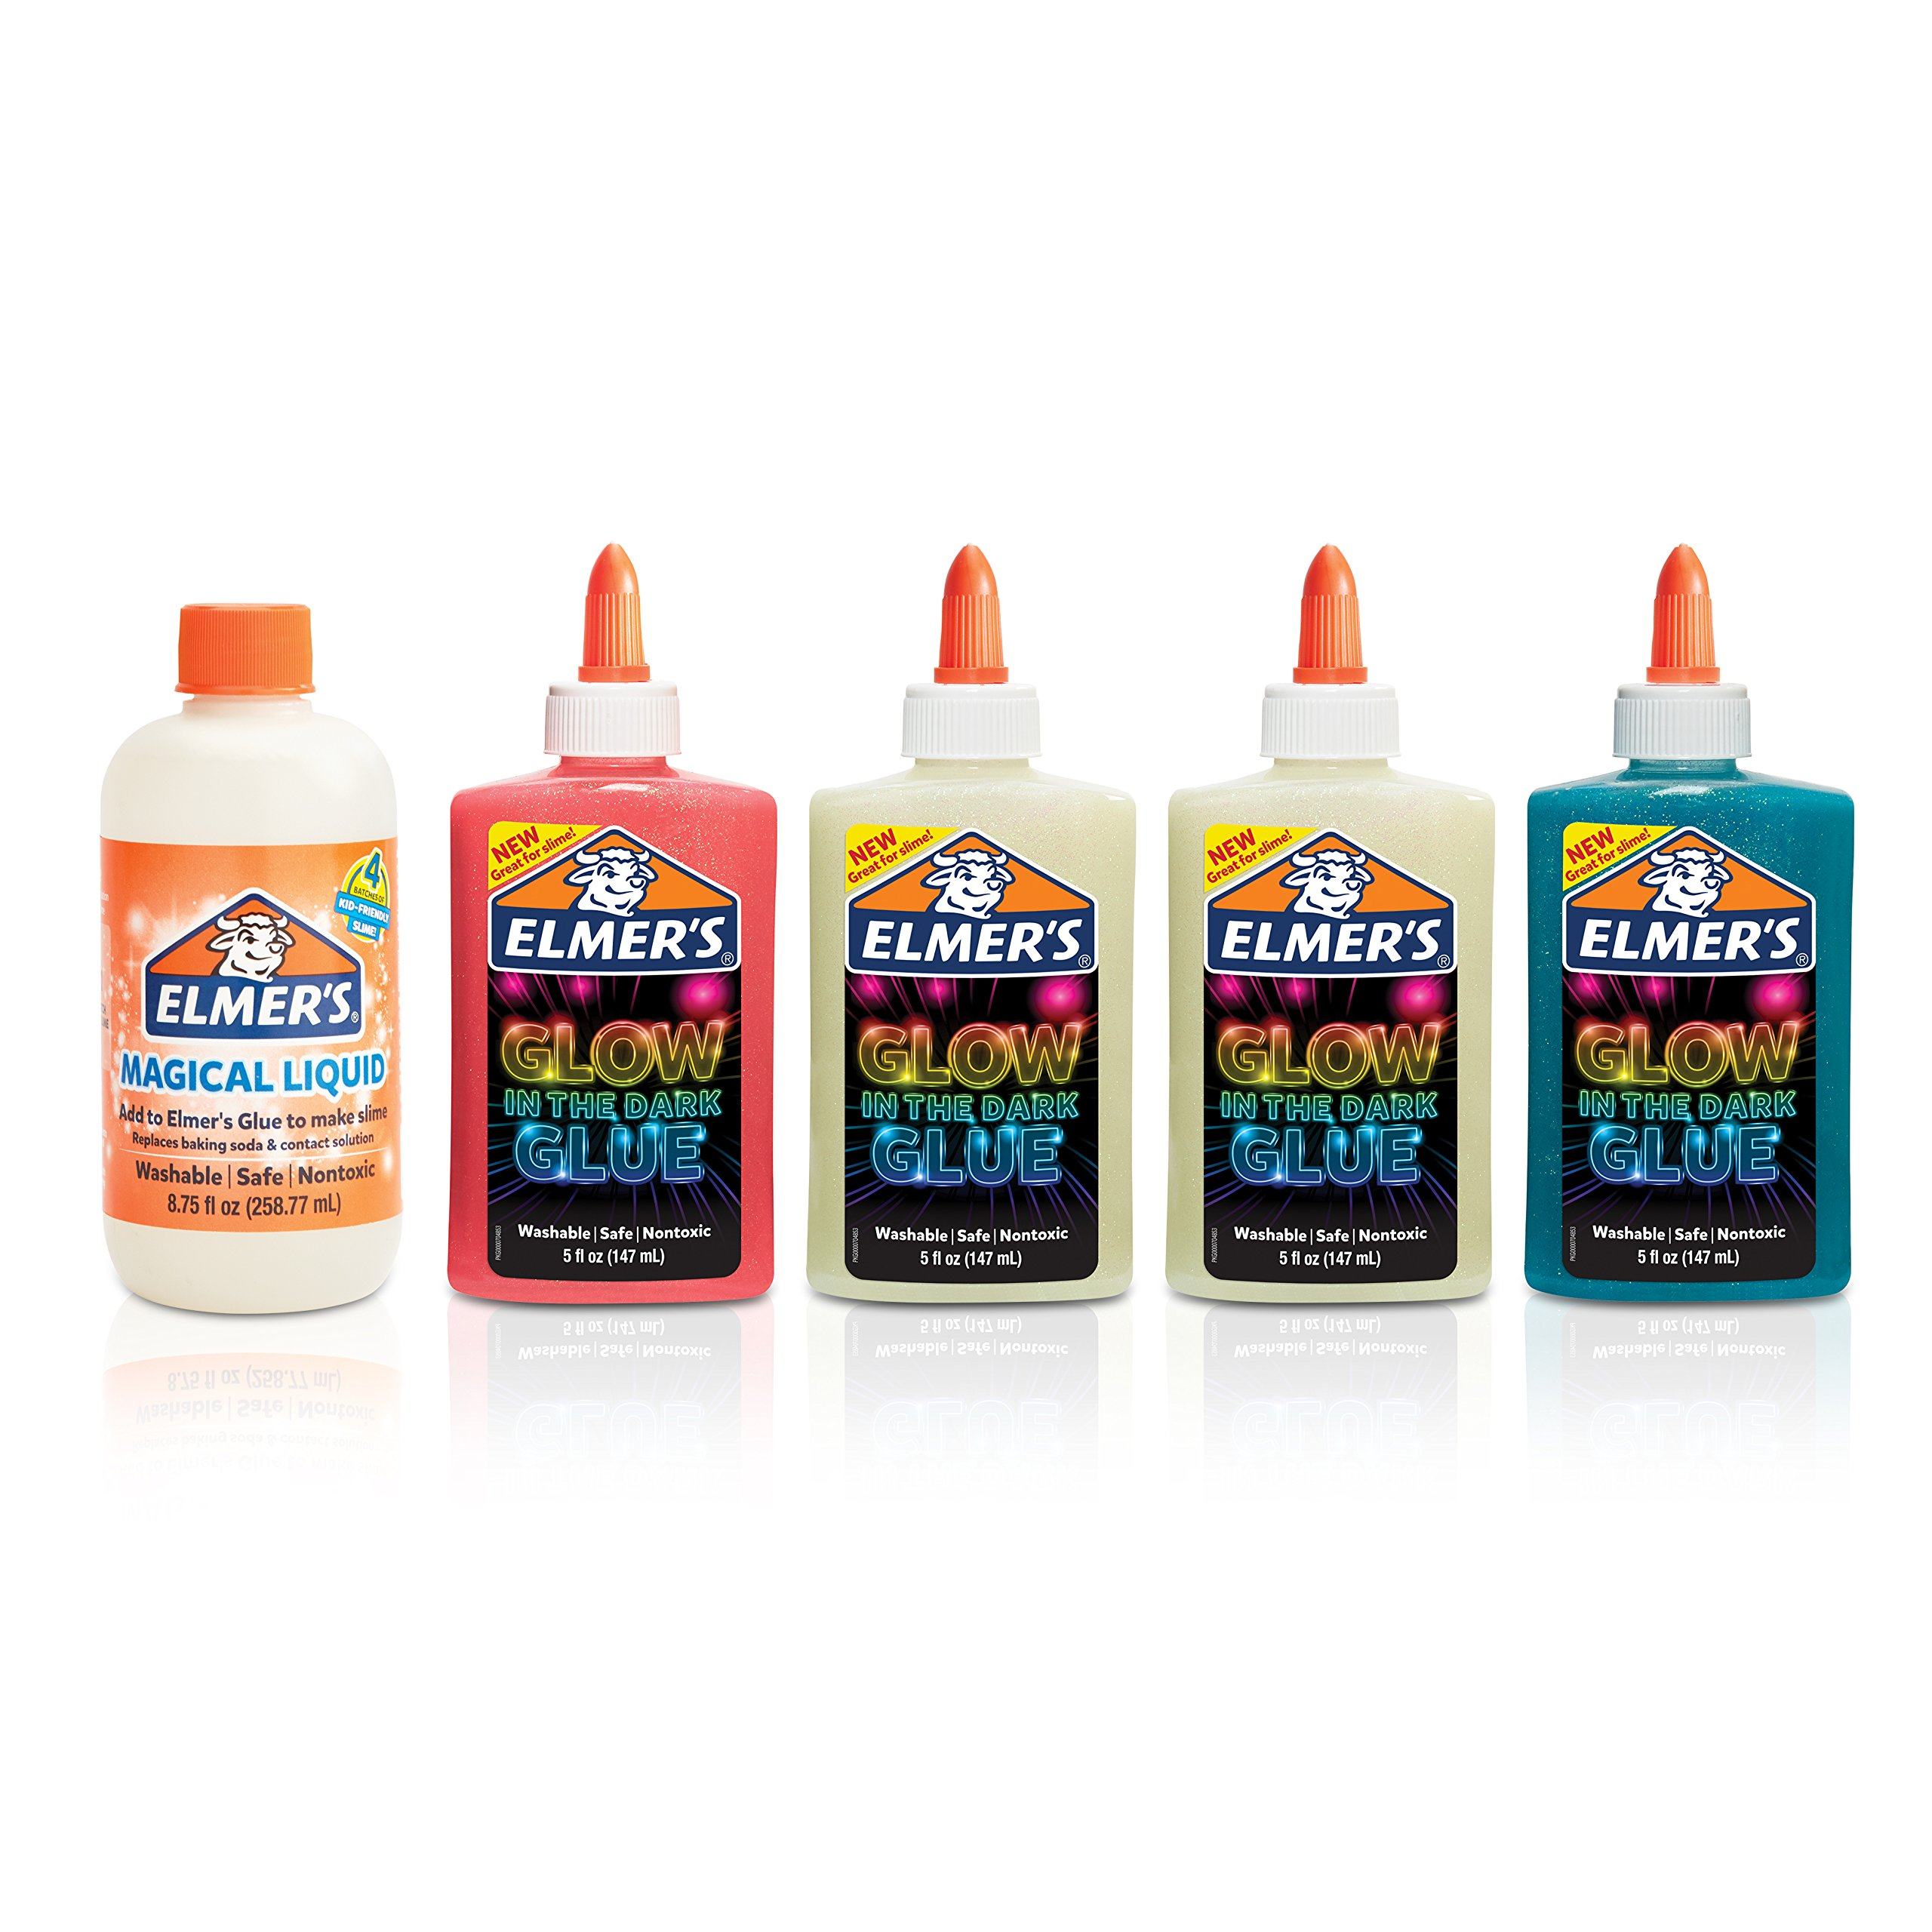 Elmer's Magical Liquid - Slime Activator and Elmer's Glow-in-the-Dark Liquid Glue, Washable, Assorted Colors, 5 Ounces Each - Great For Making Slime